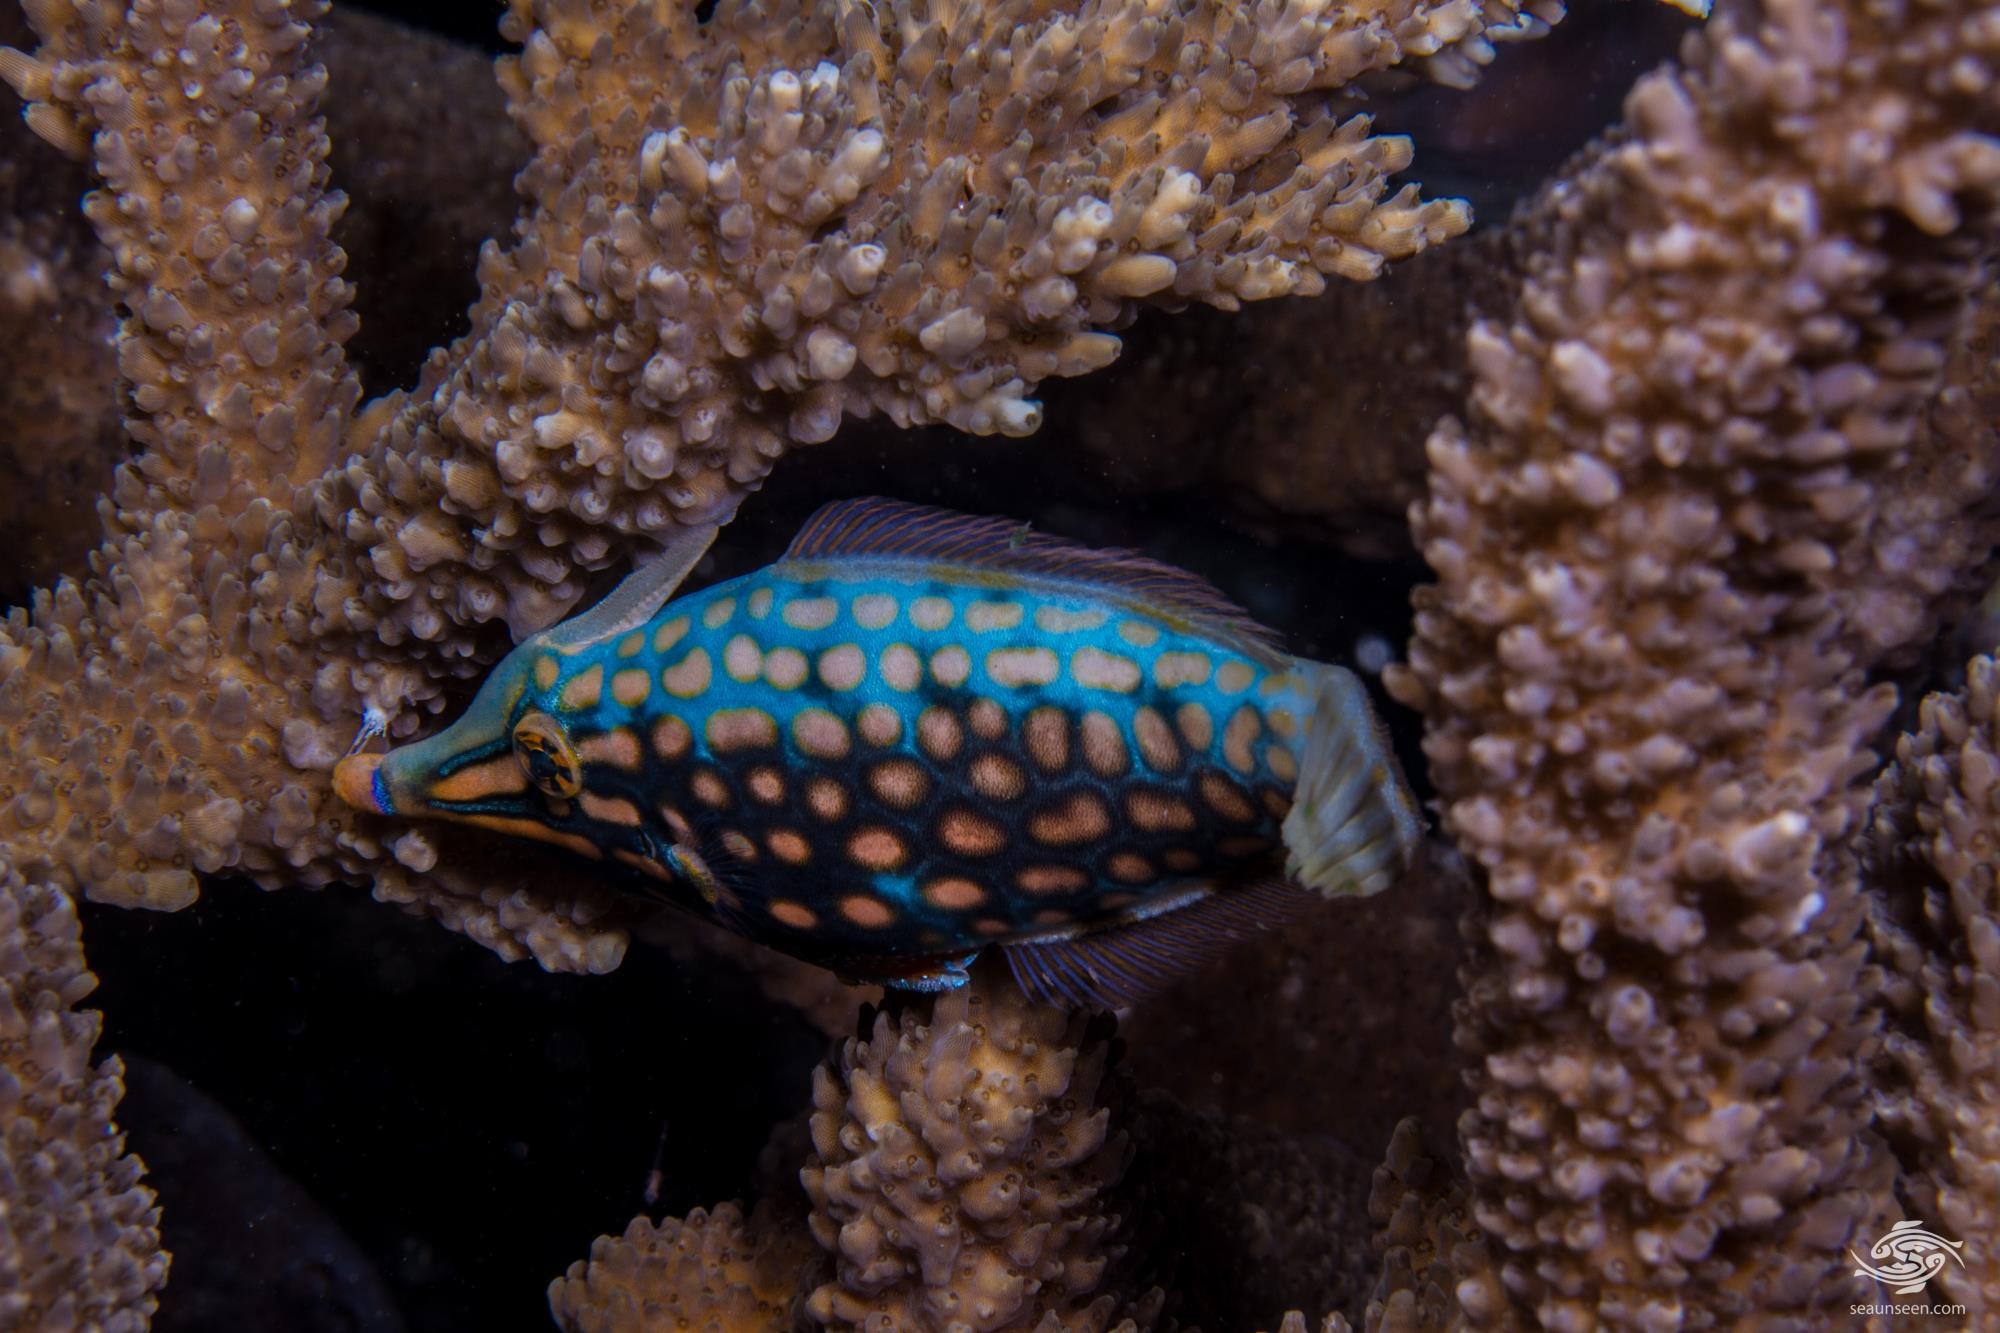 orange spotted filefish or harlequin filefish, Oxymonacanthus longirostris,